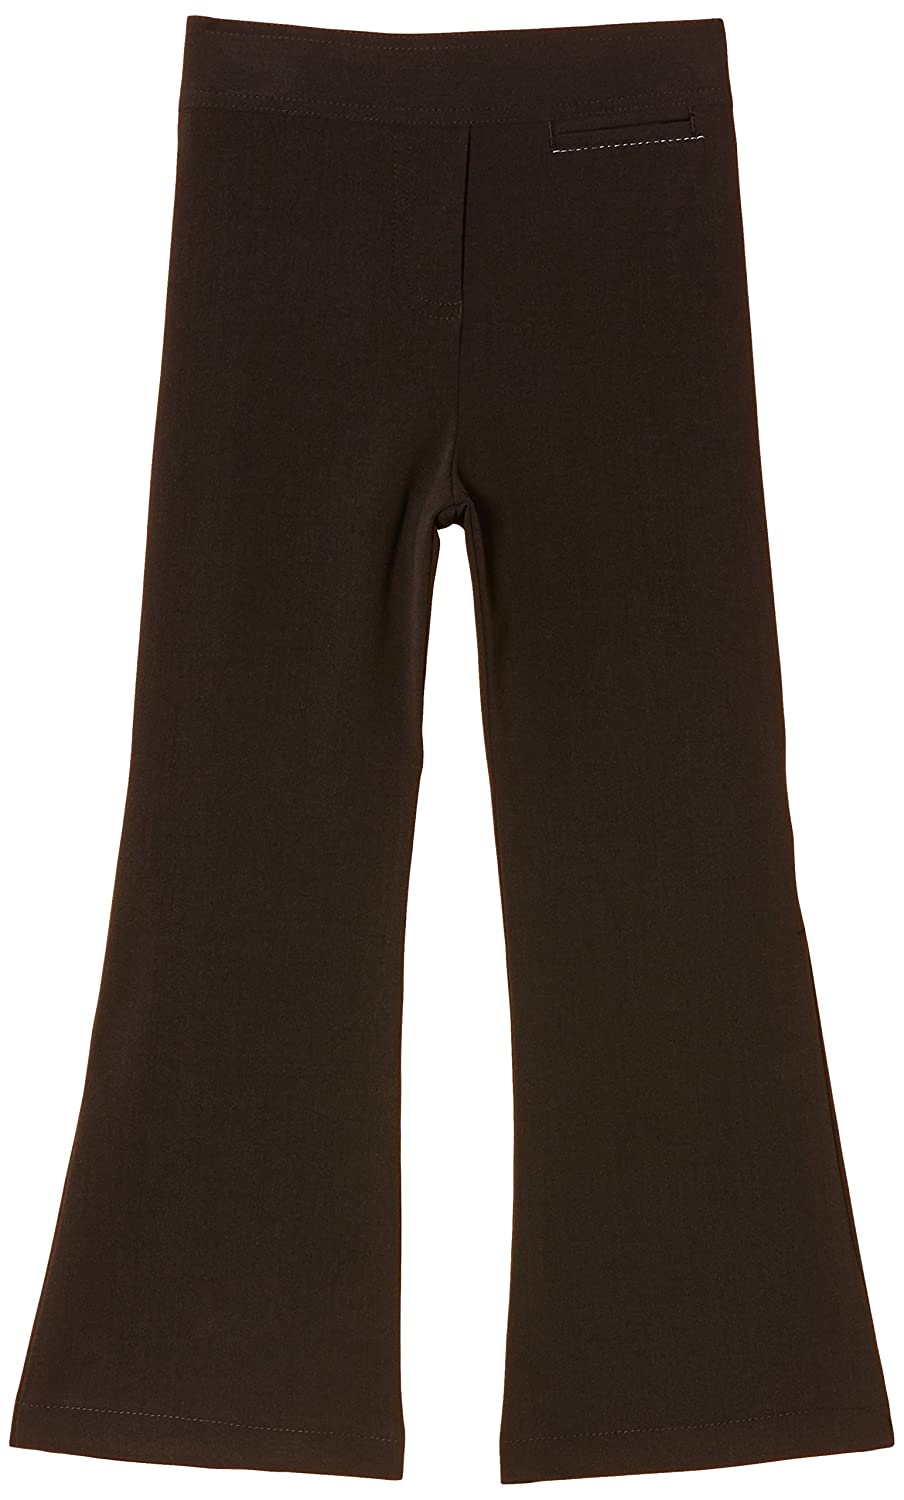 Trutex Limited Girl's Junior Girl's Plain Trousers